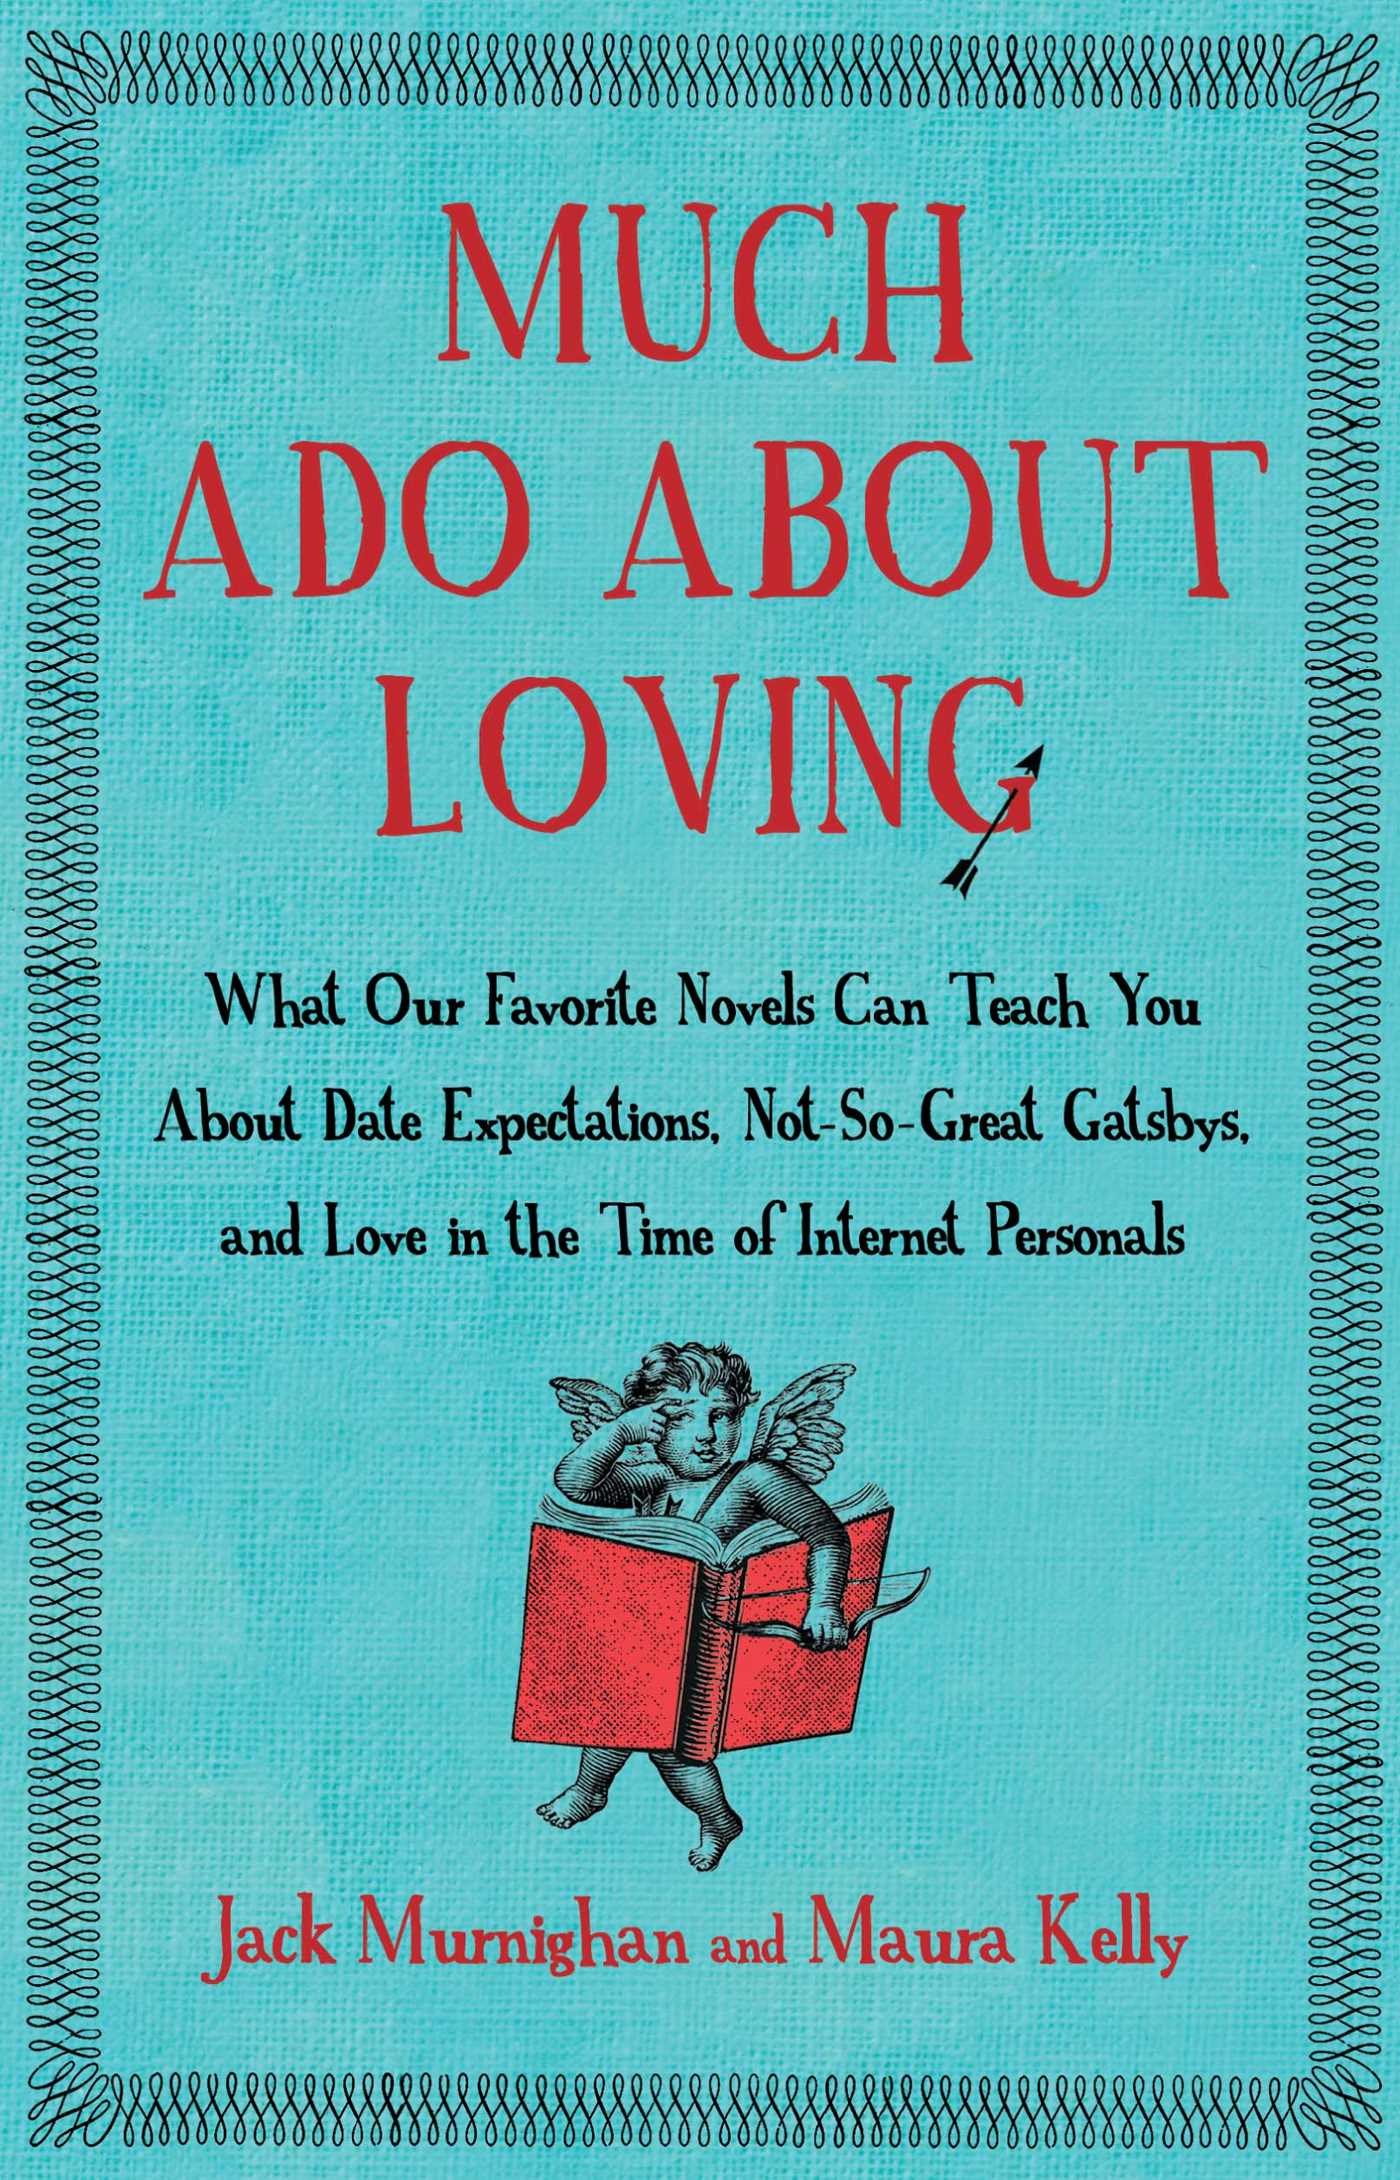 Much-ado-about-loving-9781451621266_hr